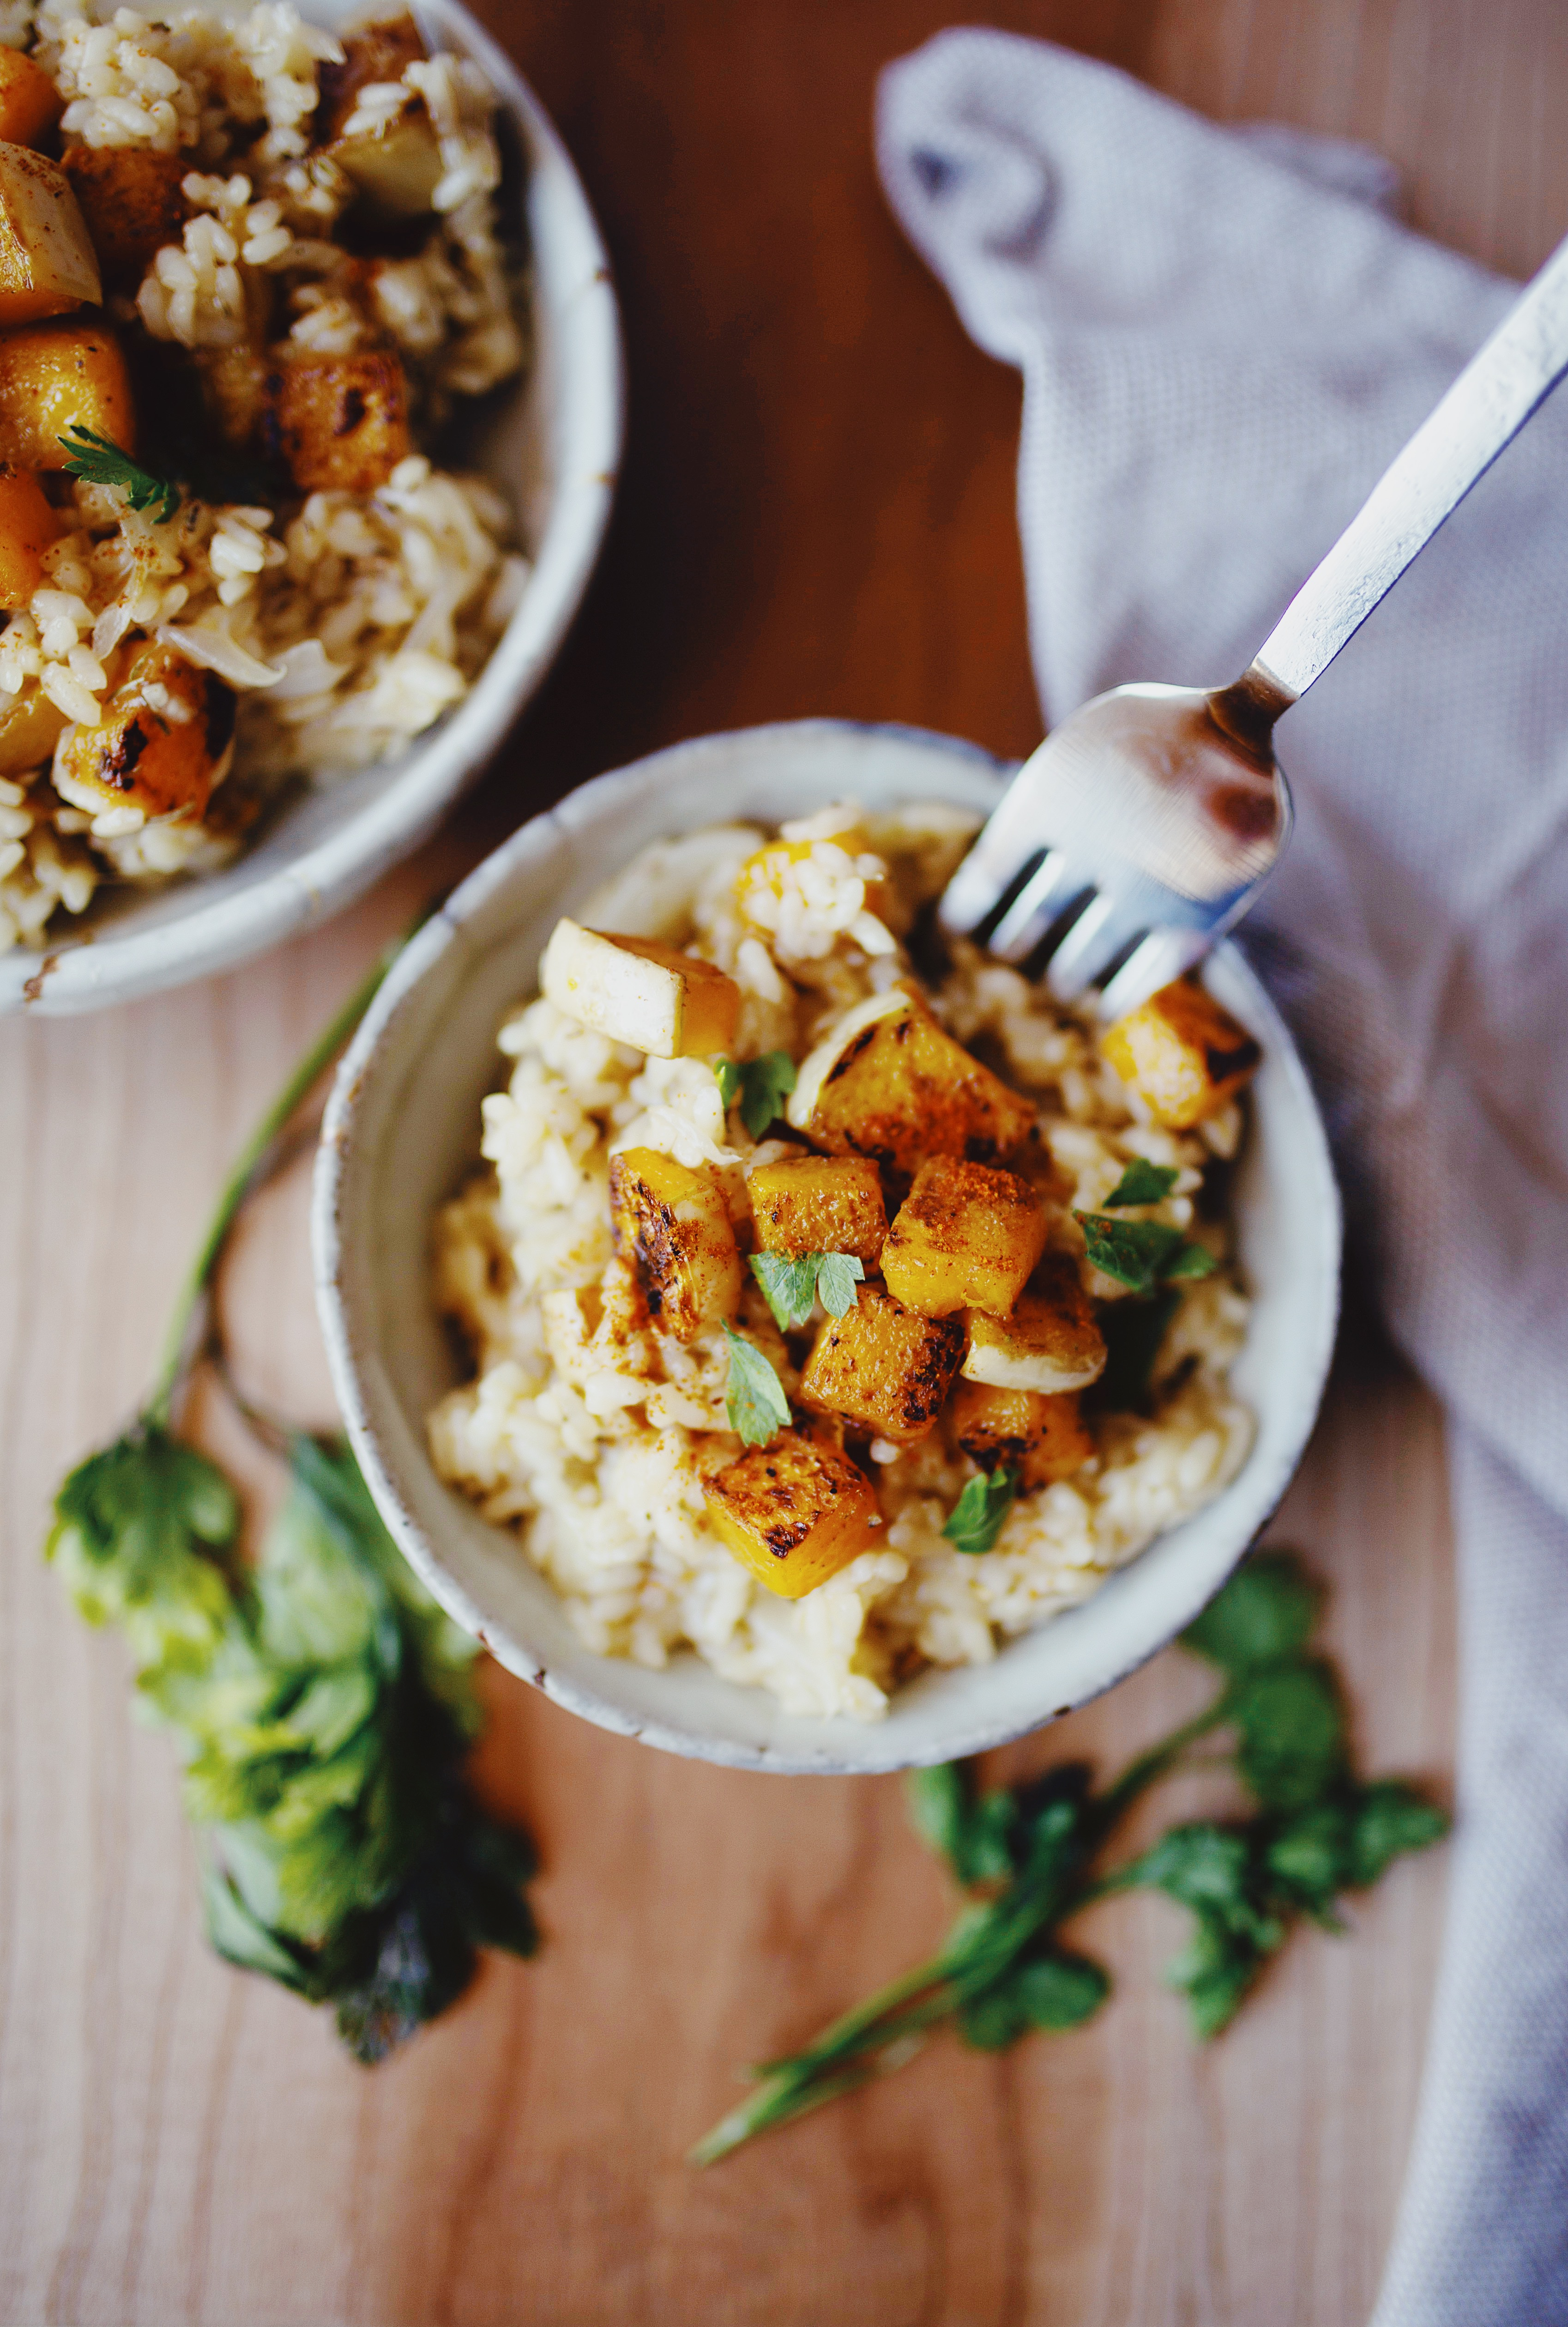 Vegan and gluten free butternut squash risotto recipe